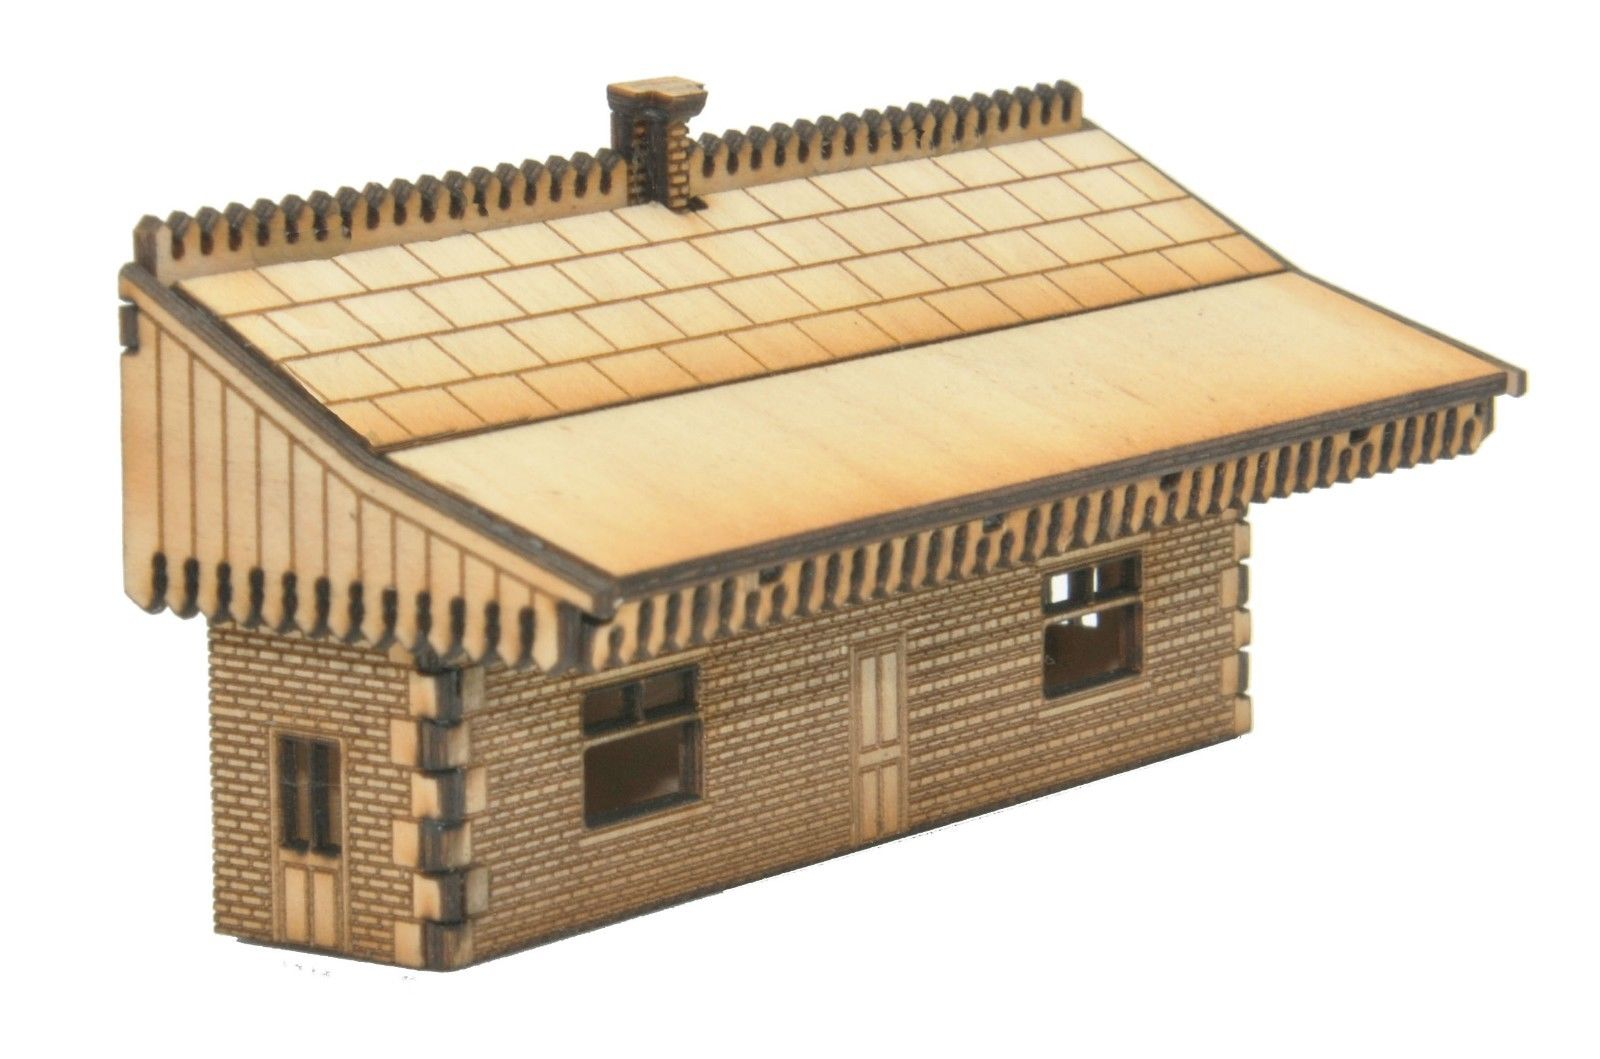 N-ST004 Mid Sized Low relief Station Building N Gauge Laser Cut Kit